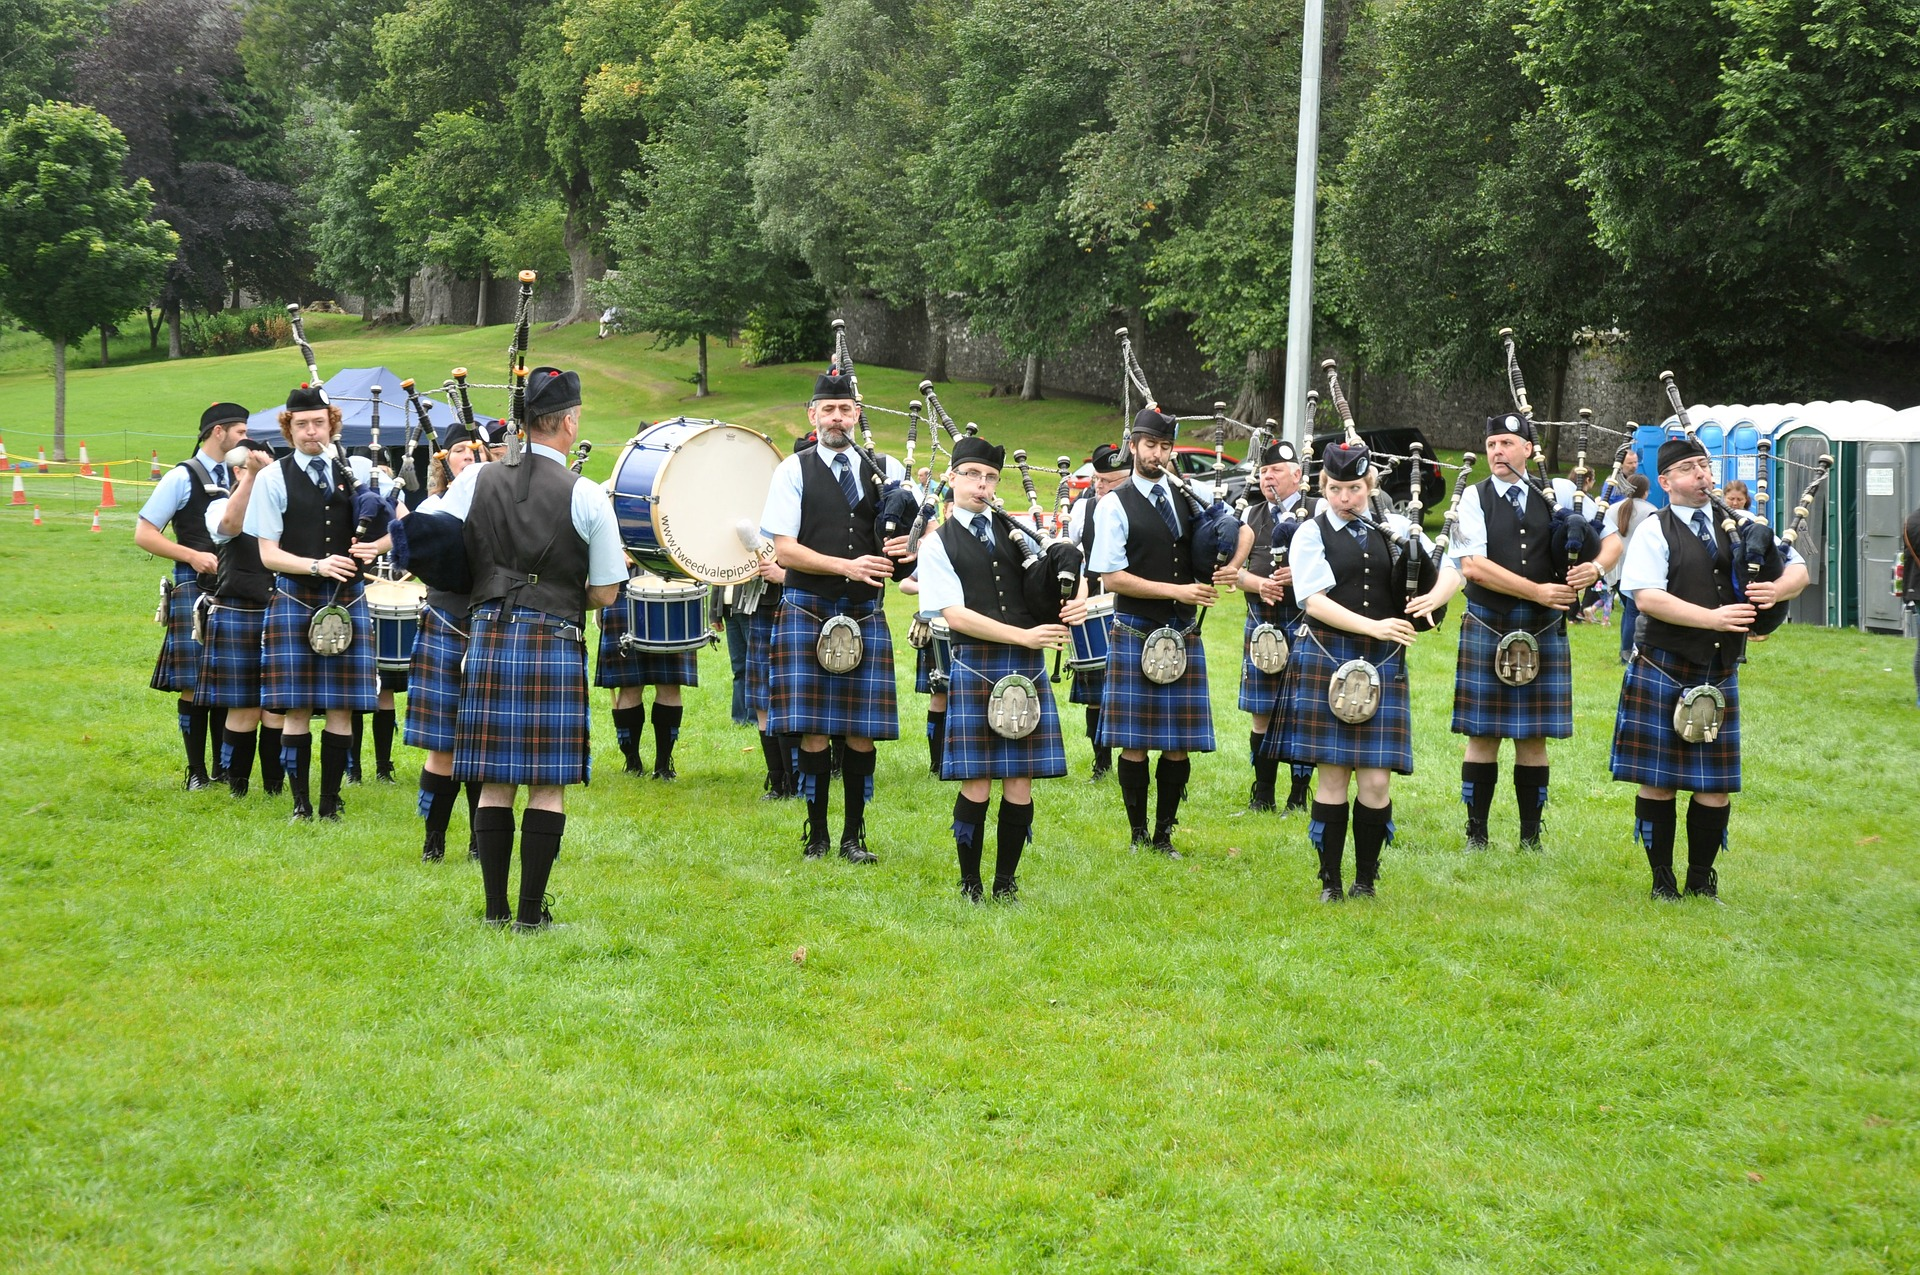 11 pipers piping